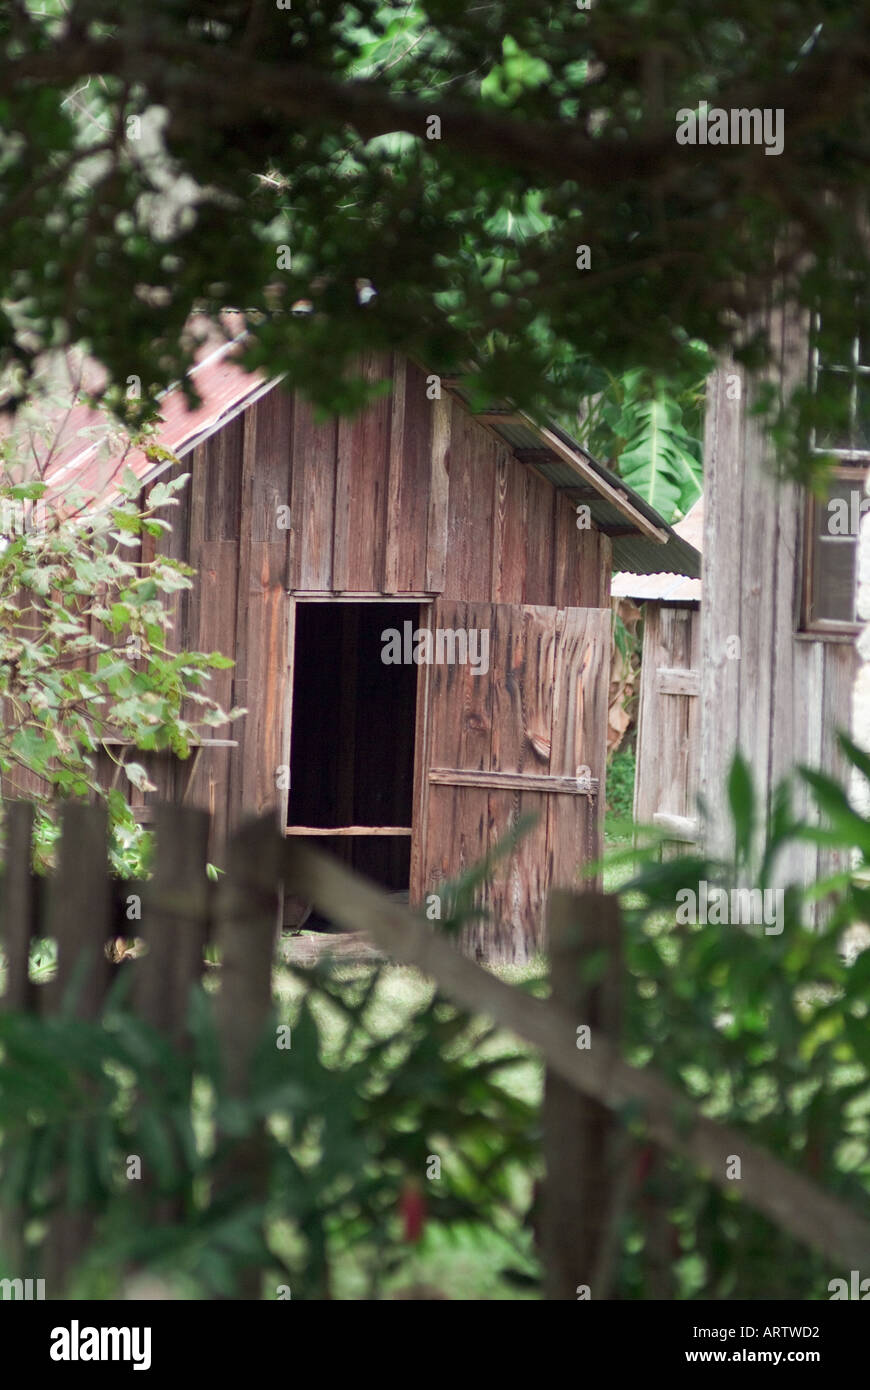 Dudley Farm Historic State Park Newberry Florida kitchen building country homestead farmstead - Stock Image